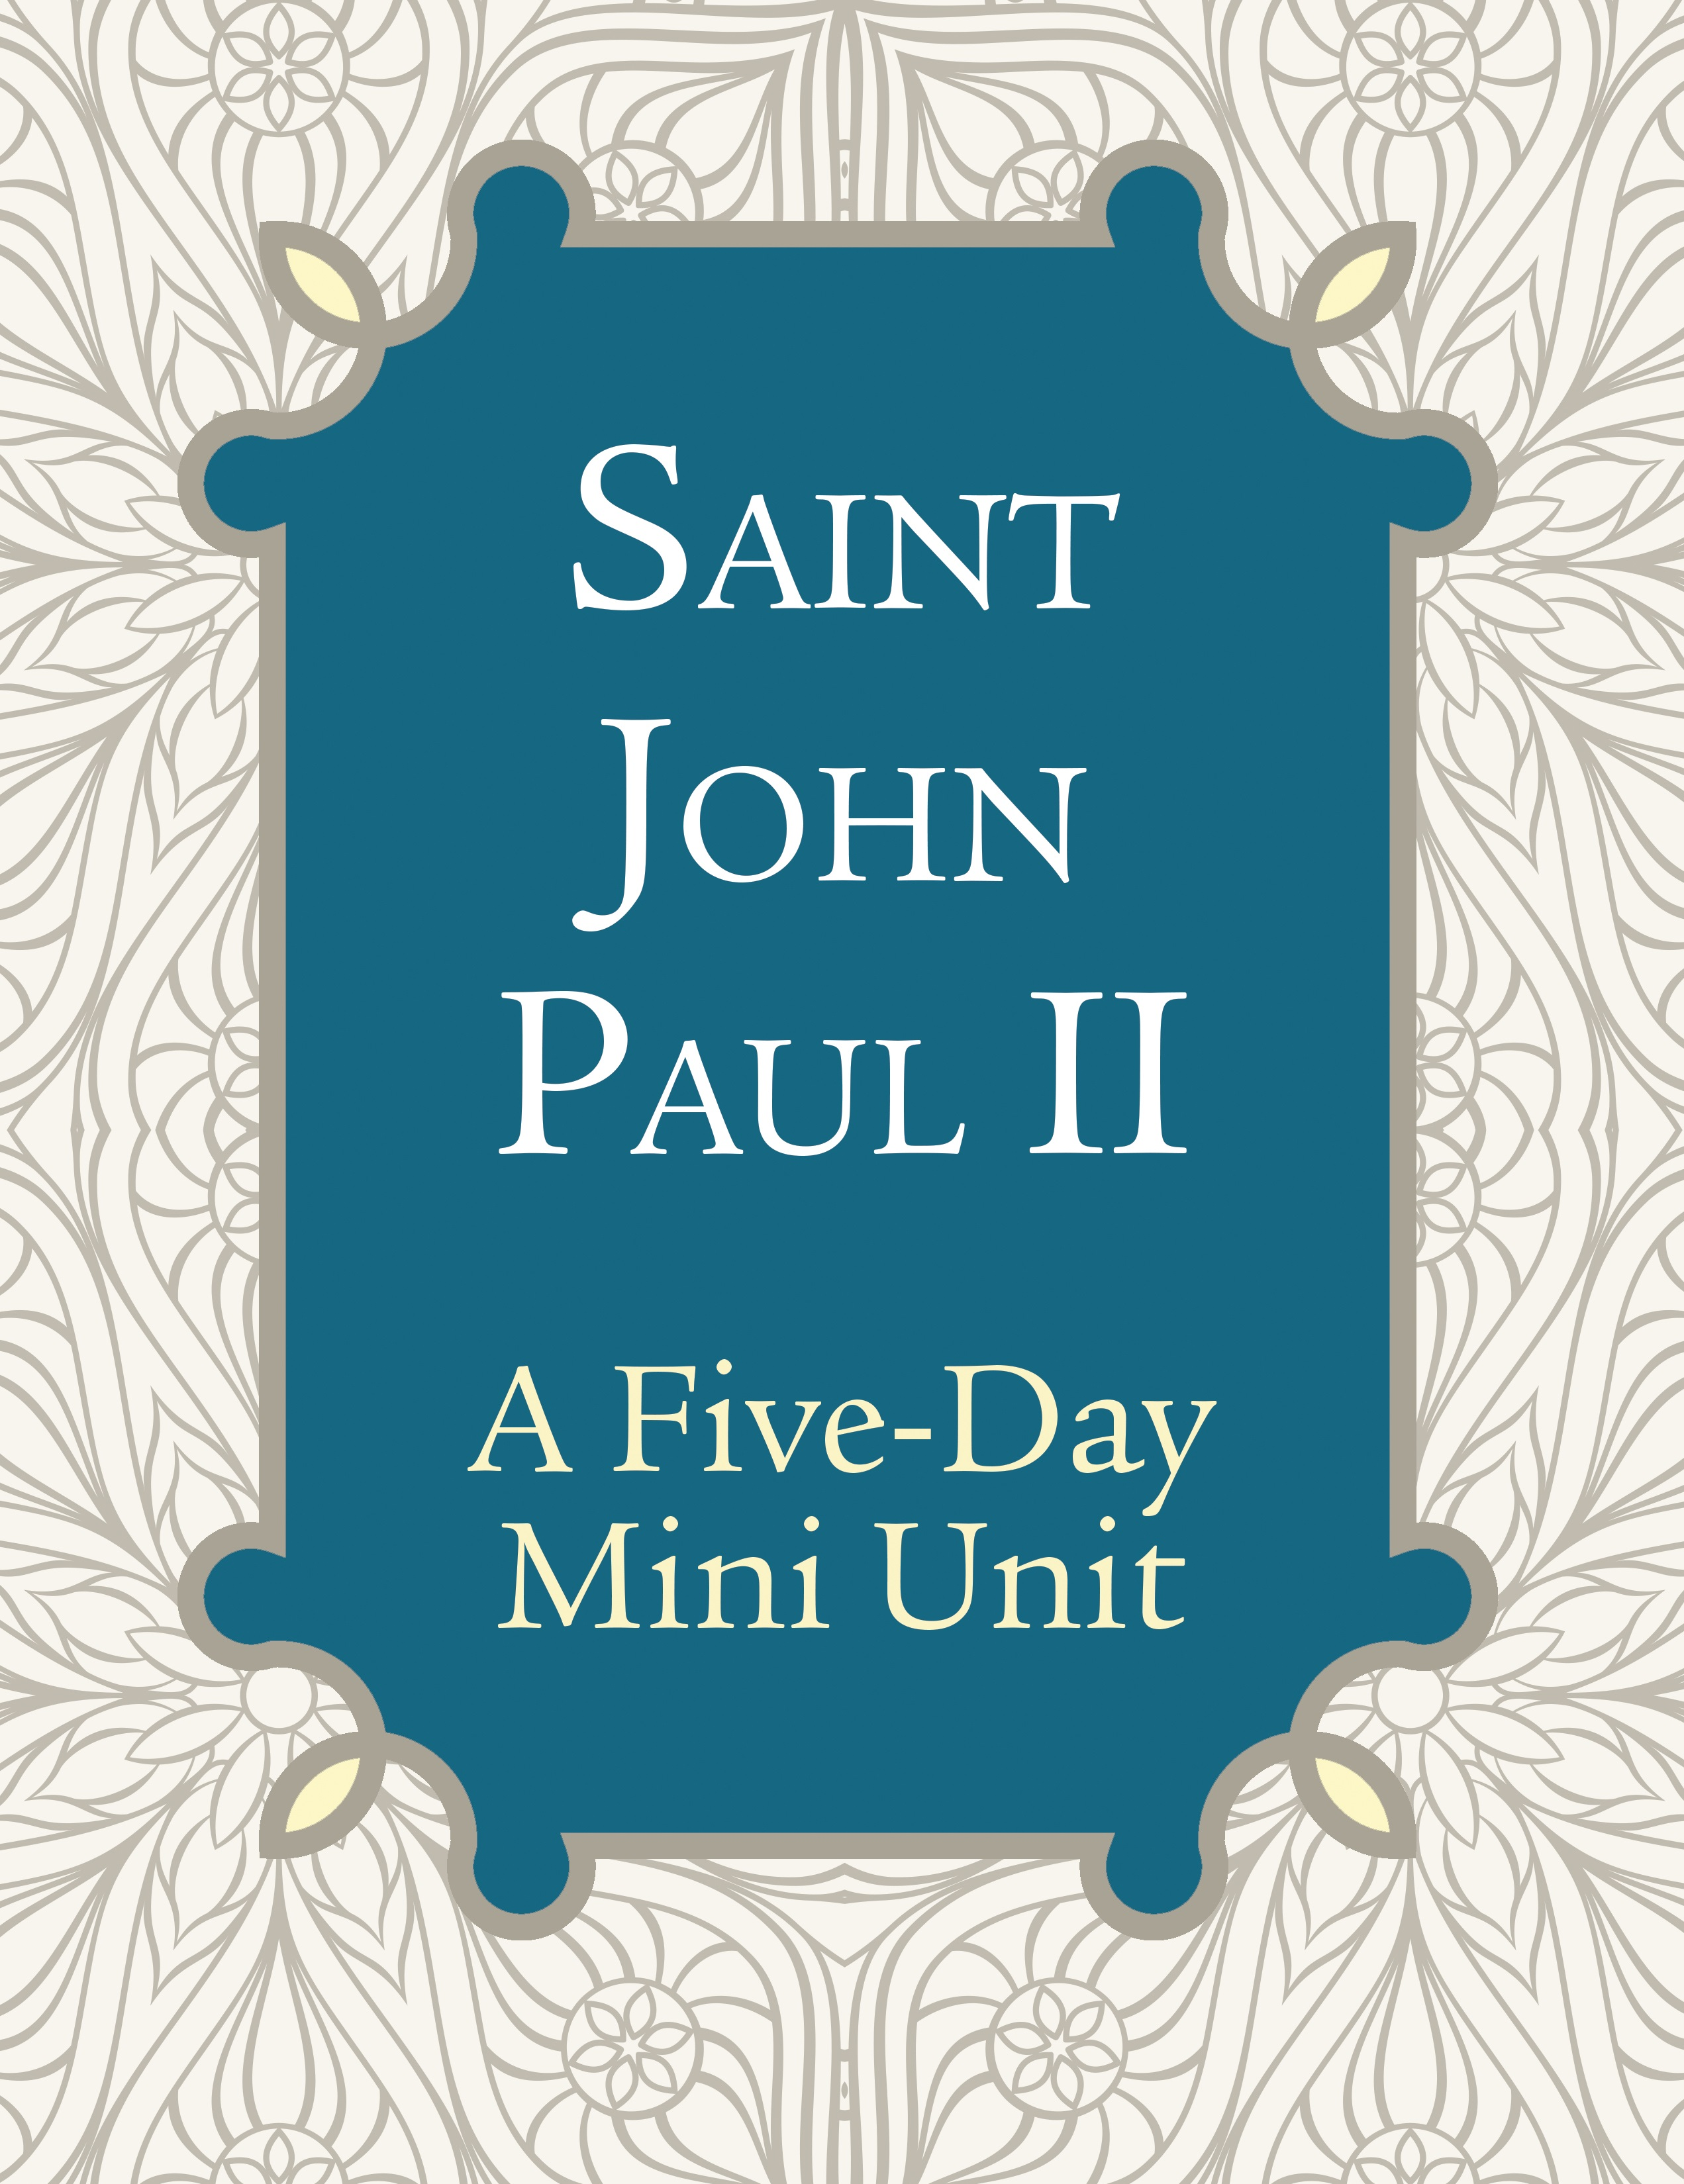 St. John Paul II [PDF License]